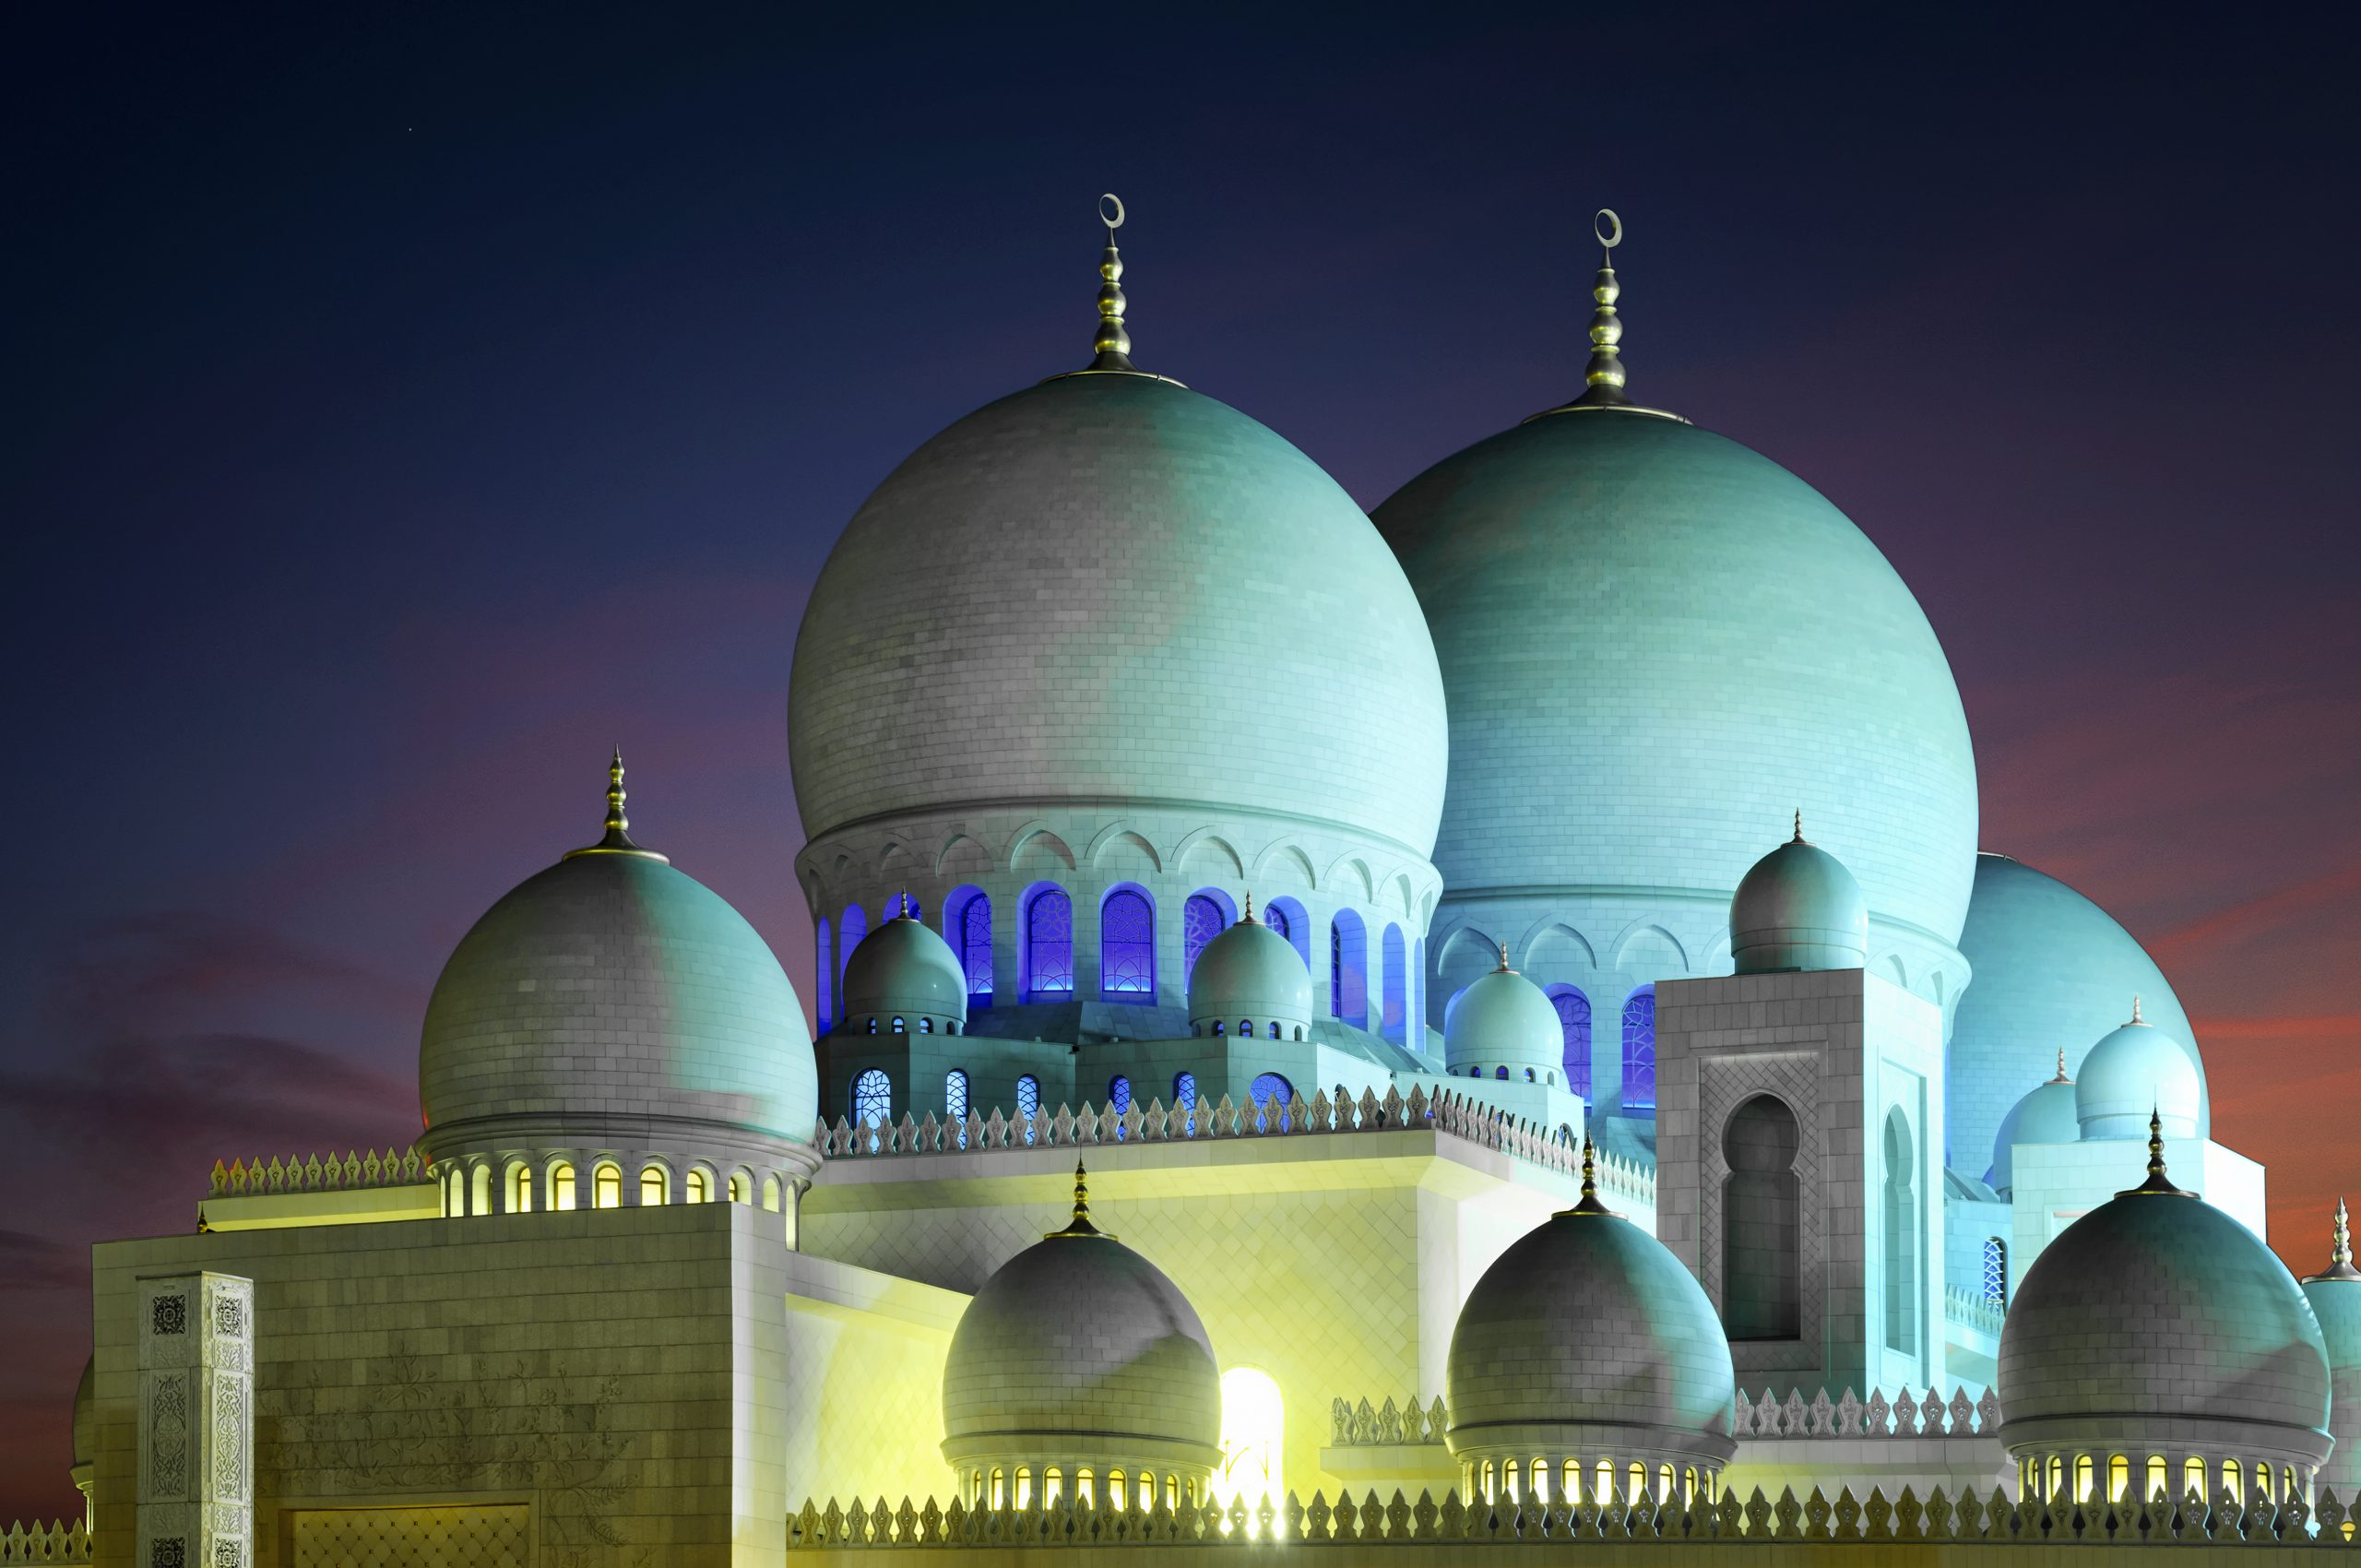 Detail of mosque domes. Amazing night view at Mosque, Abu Dhabi, United Arab Emirates